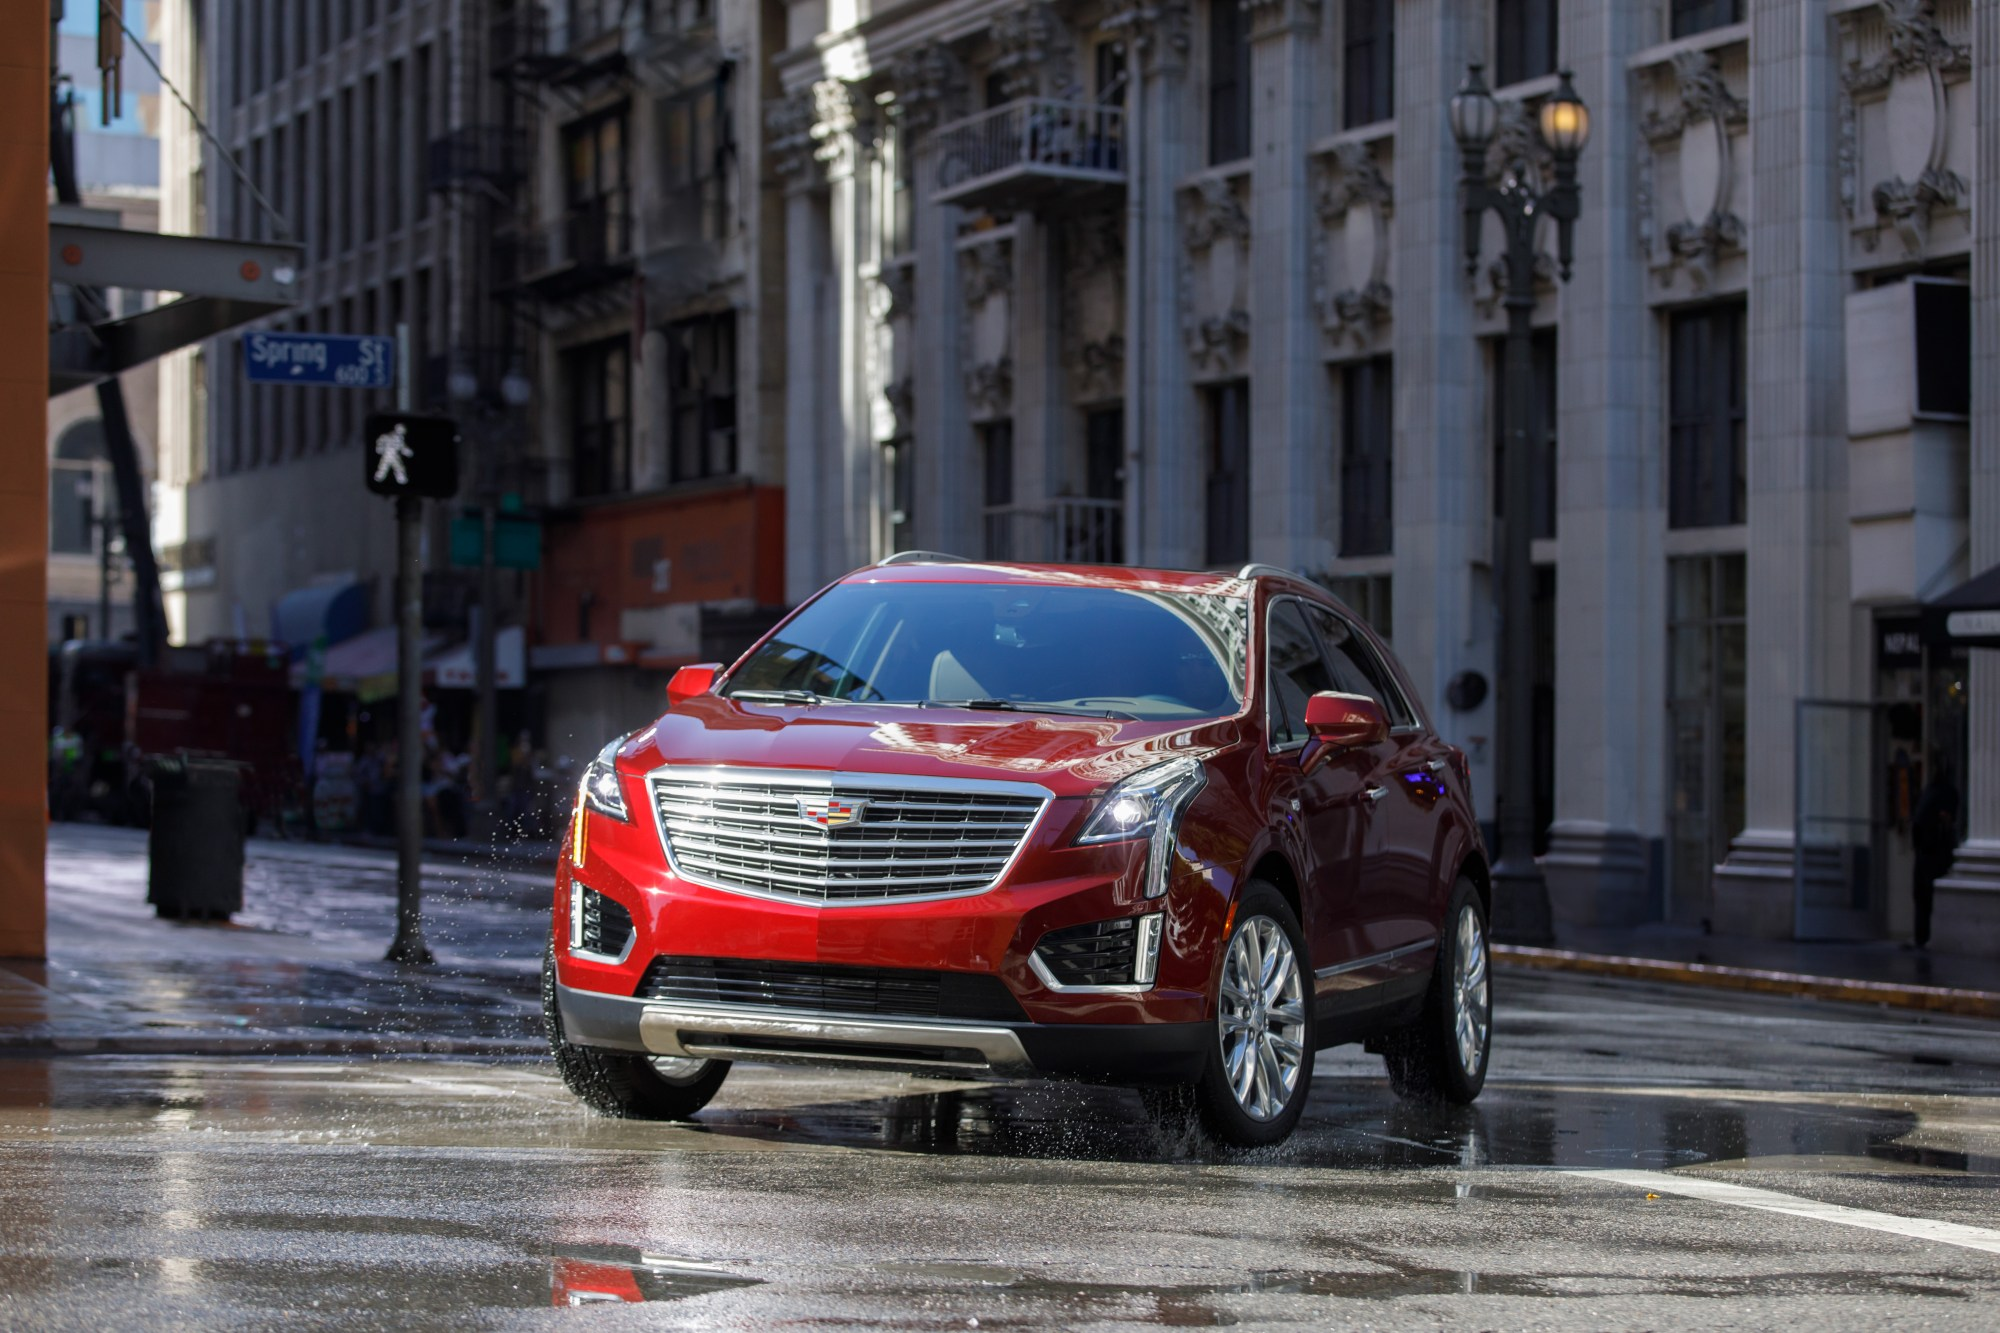 hight resolution of moving to the united states in 2005 hester stayed in engineering holding a variety of positions including chief engineer of the chevrolet spark buick